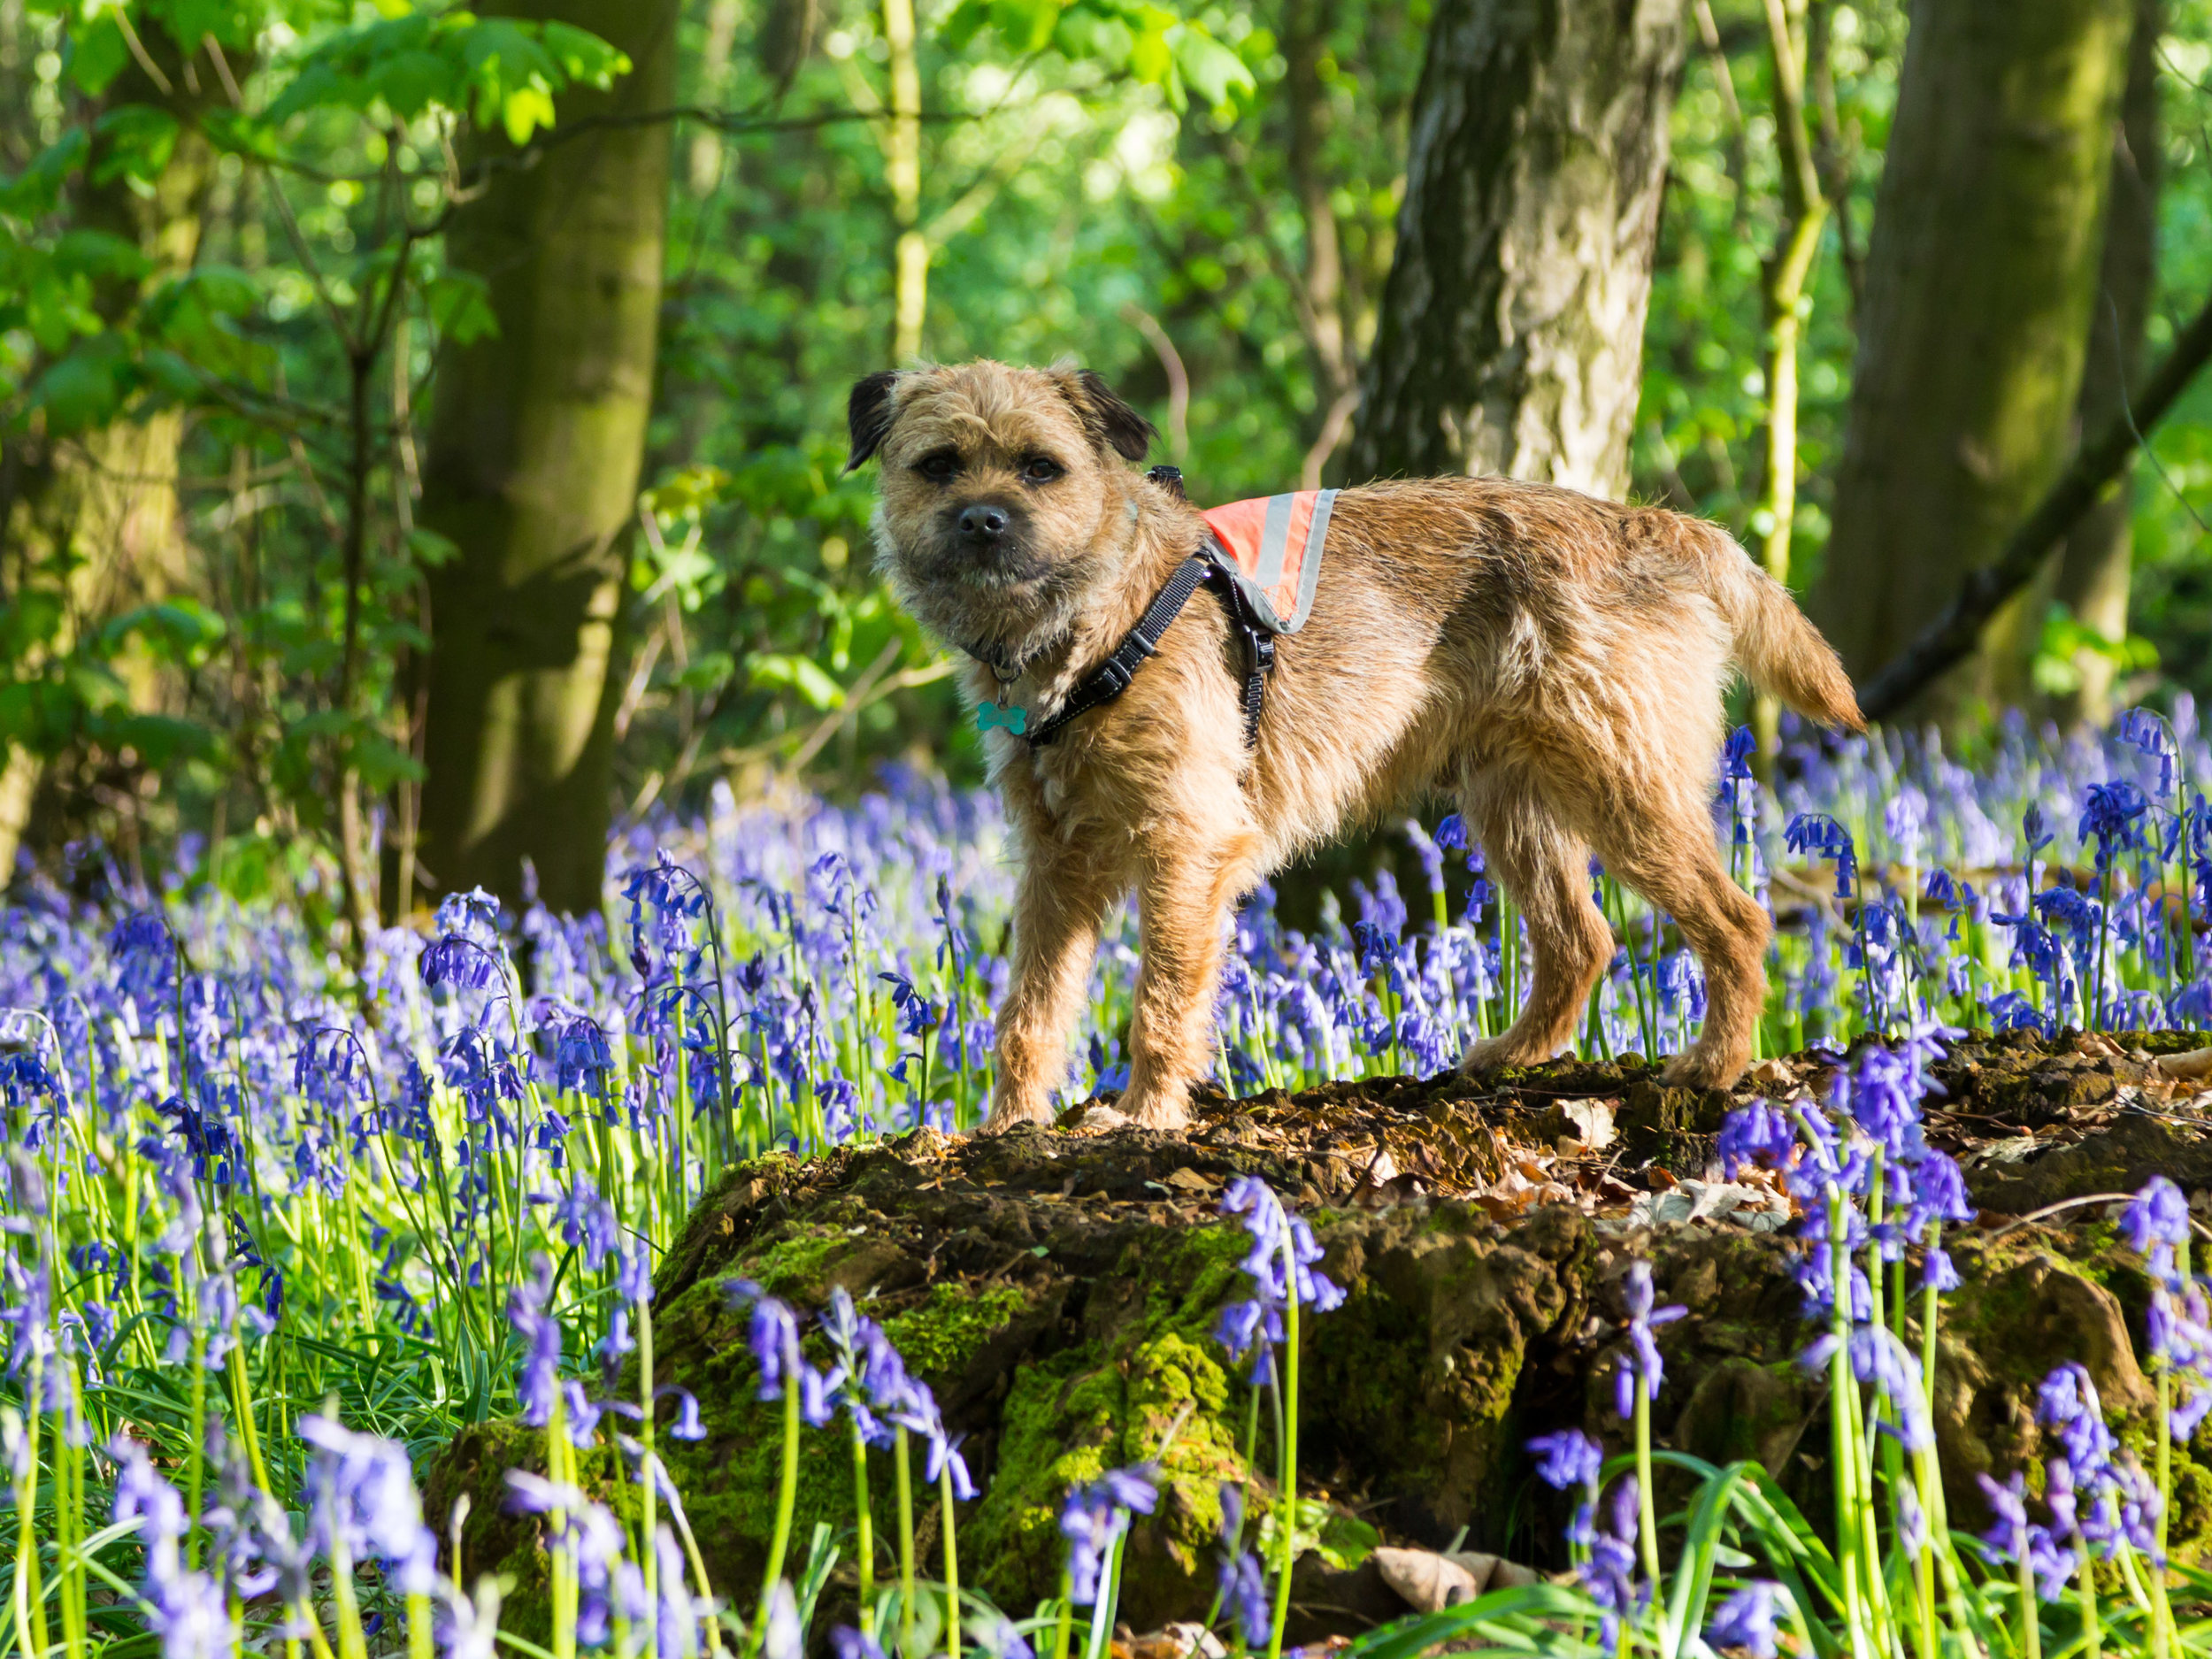 Pickle - Border Terrier, born Jan 2017.Pickle loves exploring for miles and bringing toys to my desk to give me a break from working (he's a very thoughtful puppy).